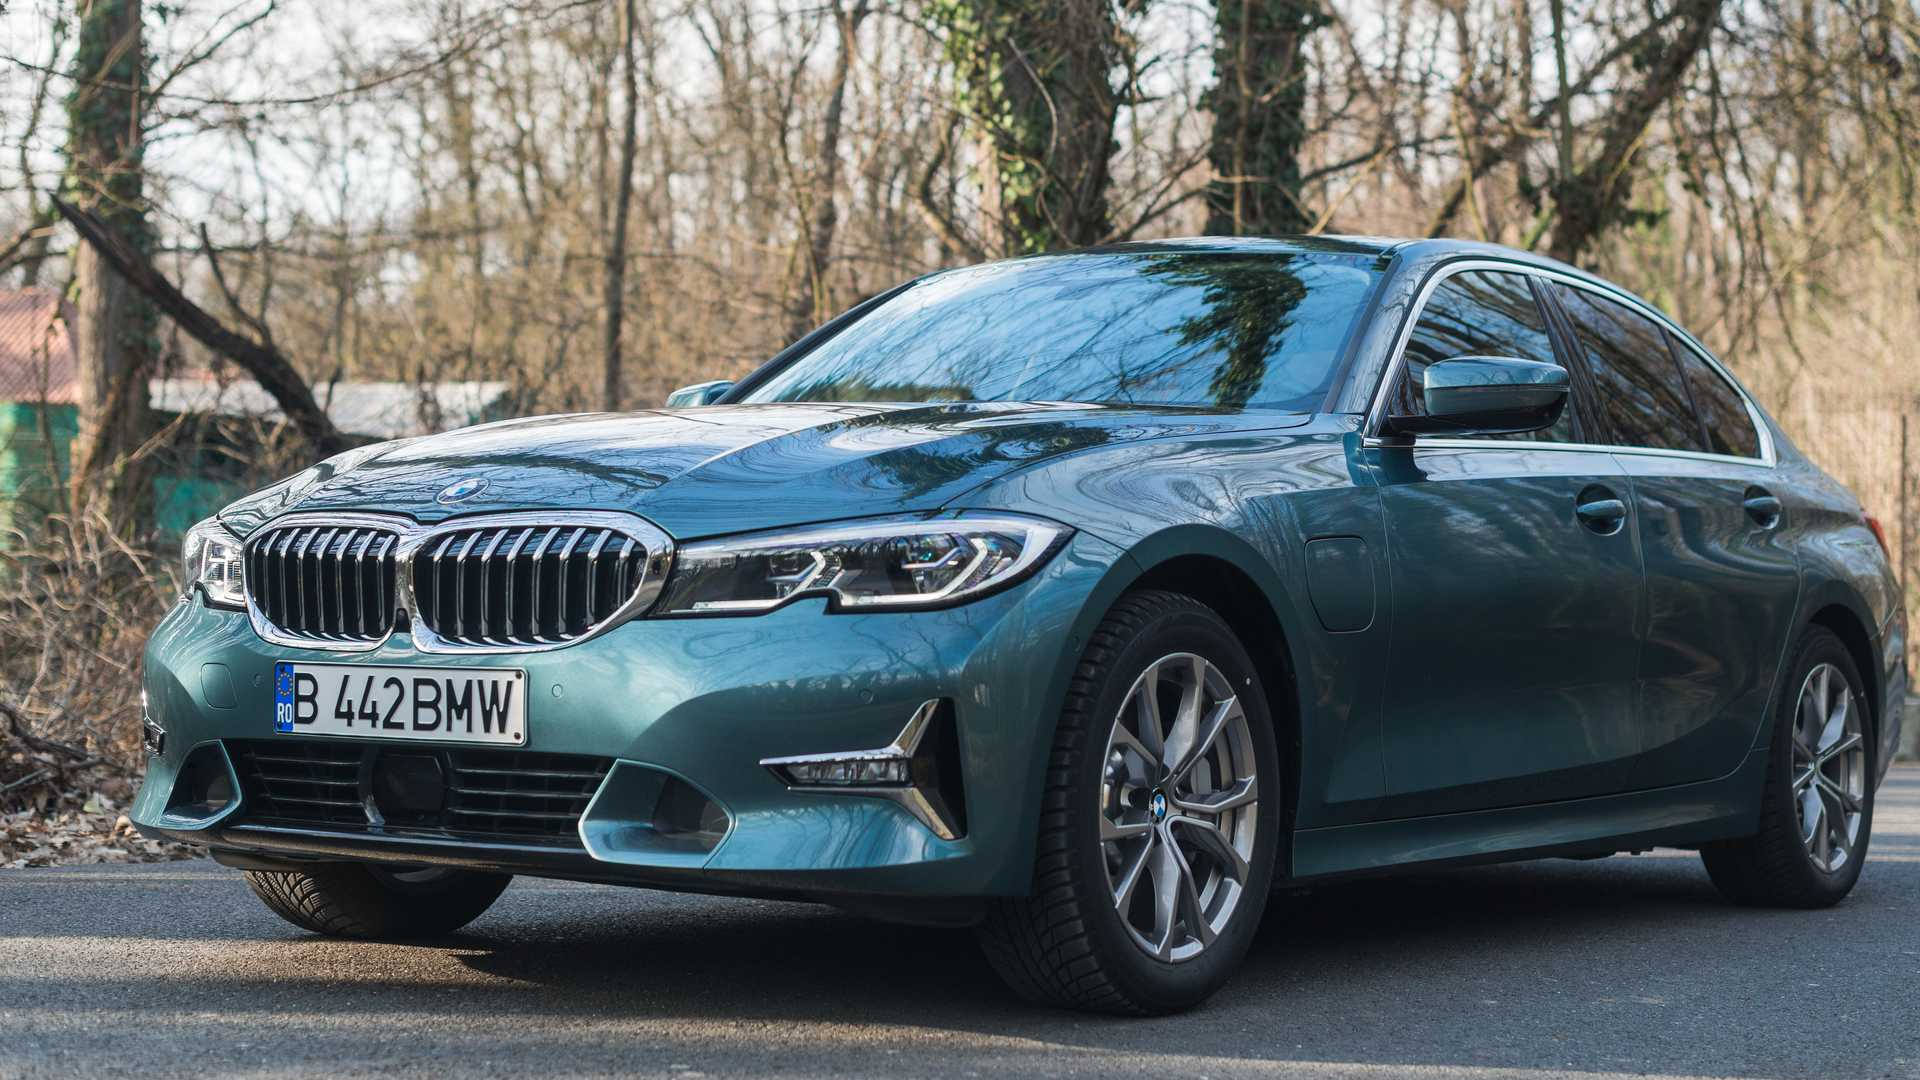 What Is The 2020 Bmw 330e Like To Drive And Live With